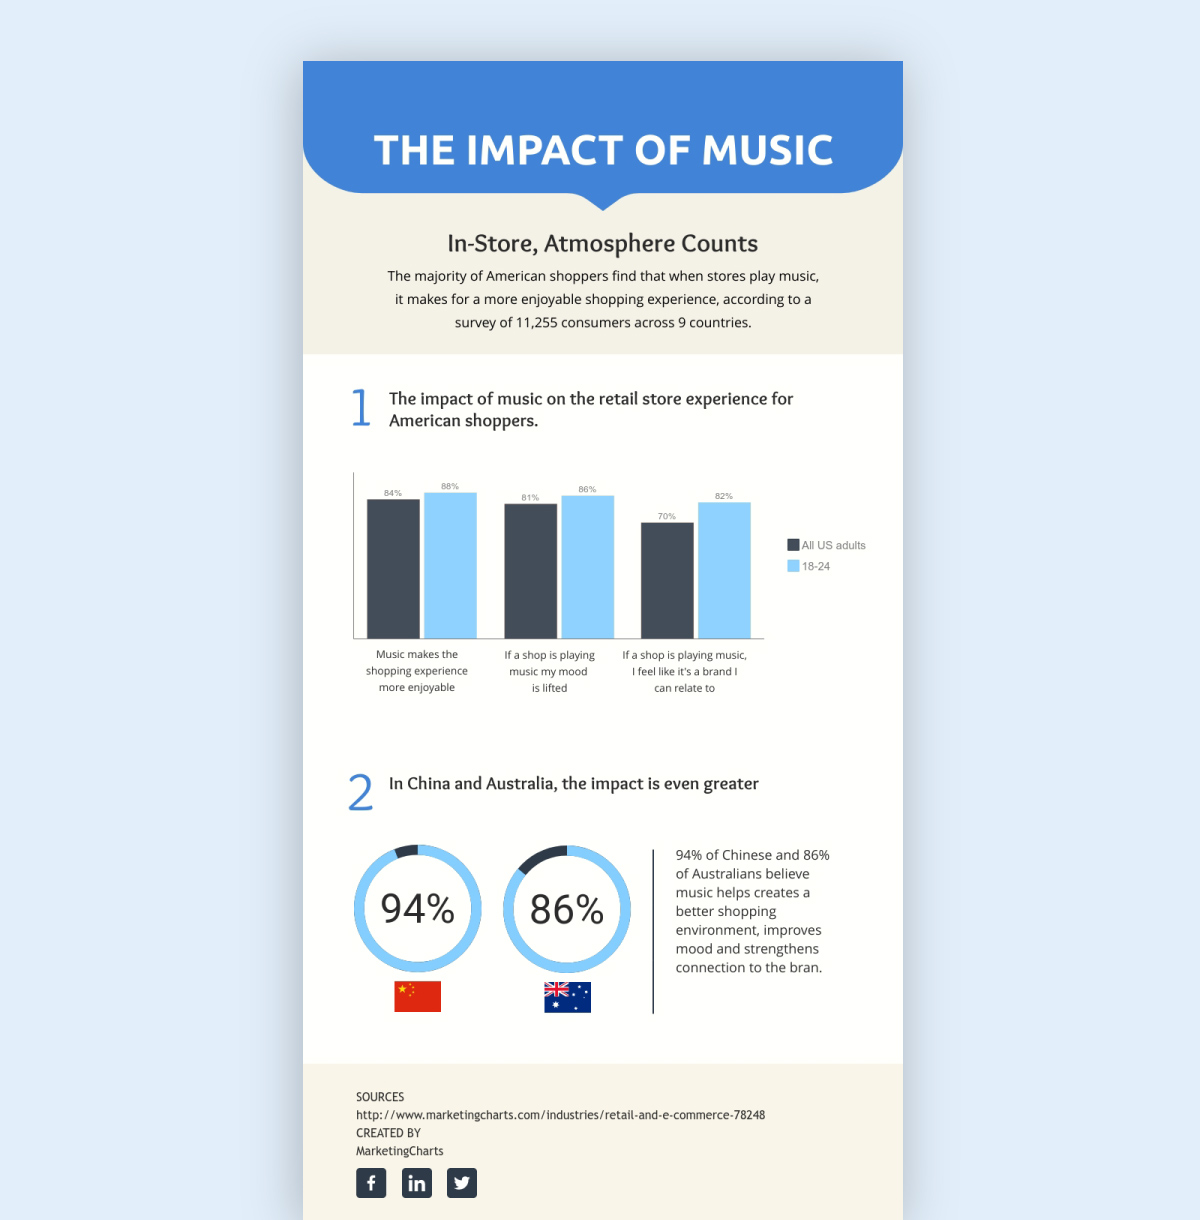 infographic best practice - visuals data visualization infographic example template visme 2